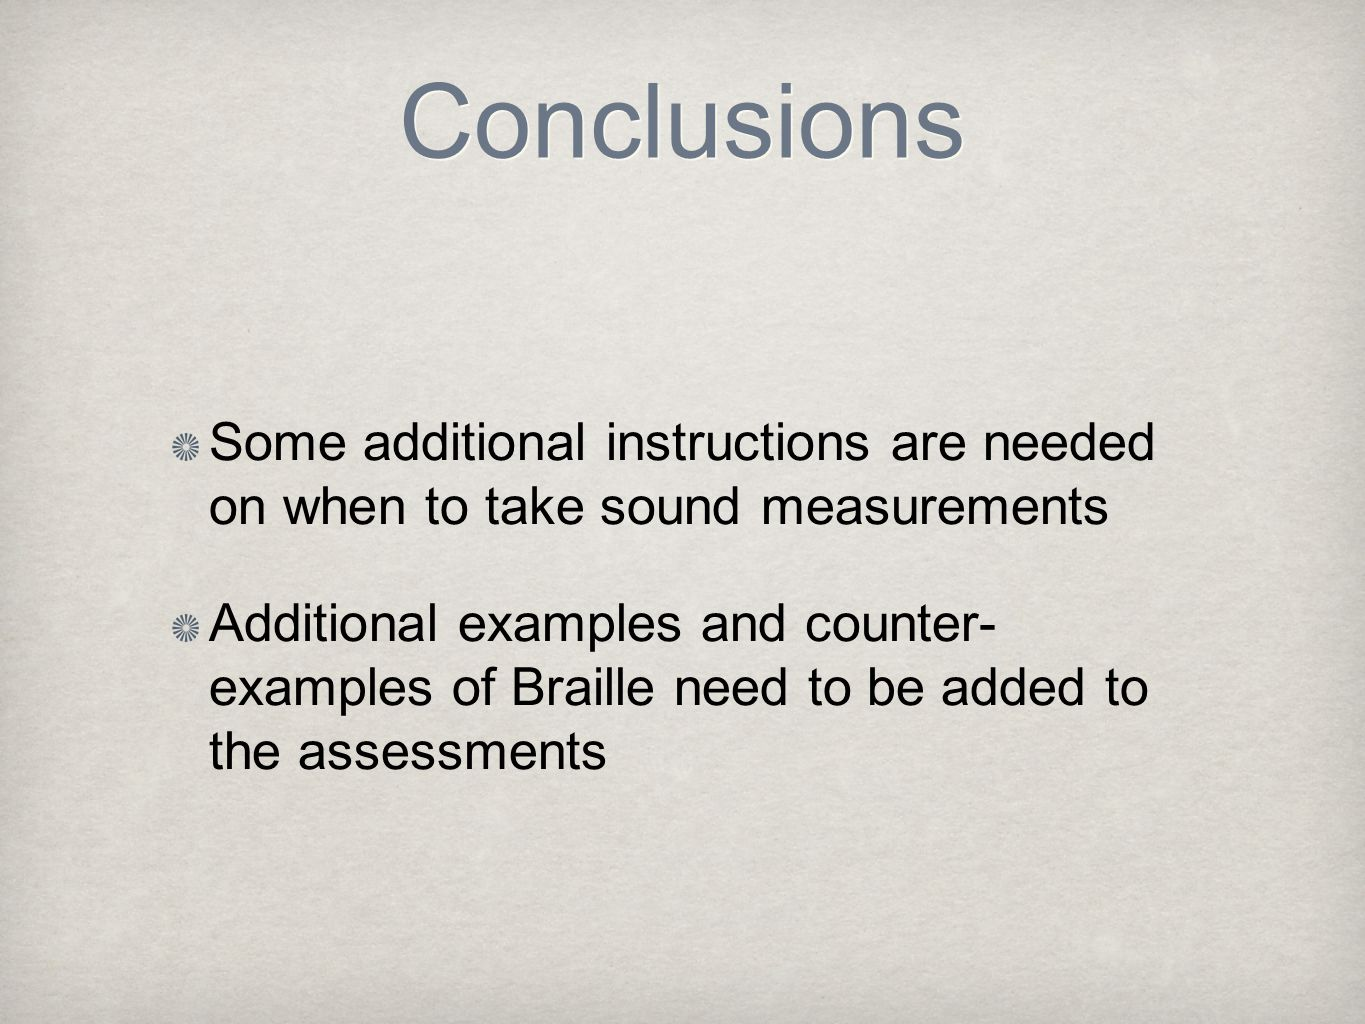 Conclusions Some additional instructions are needed on when to take sound measurements Additional examples and counter- examples of Braille need to be added to the assessments